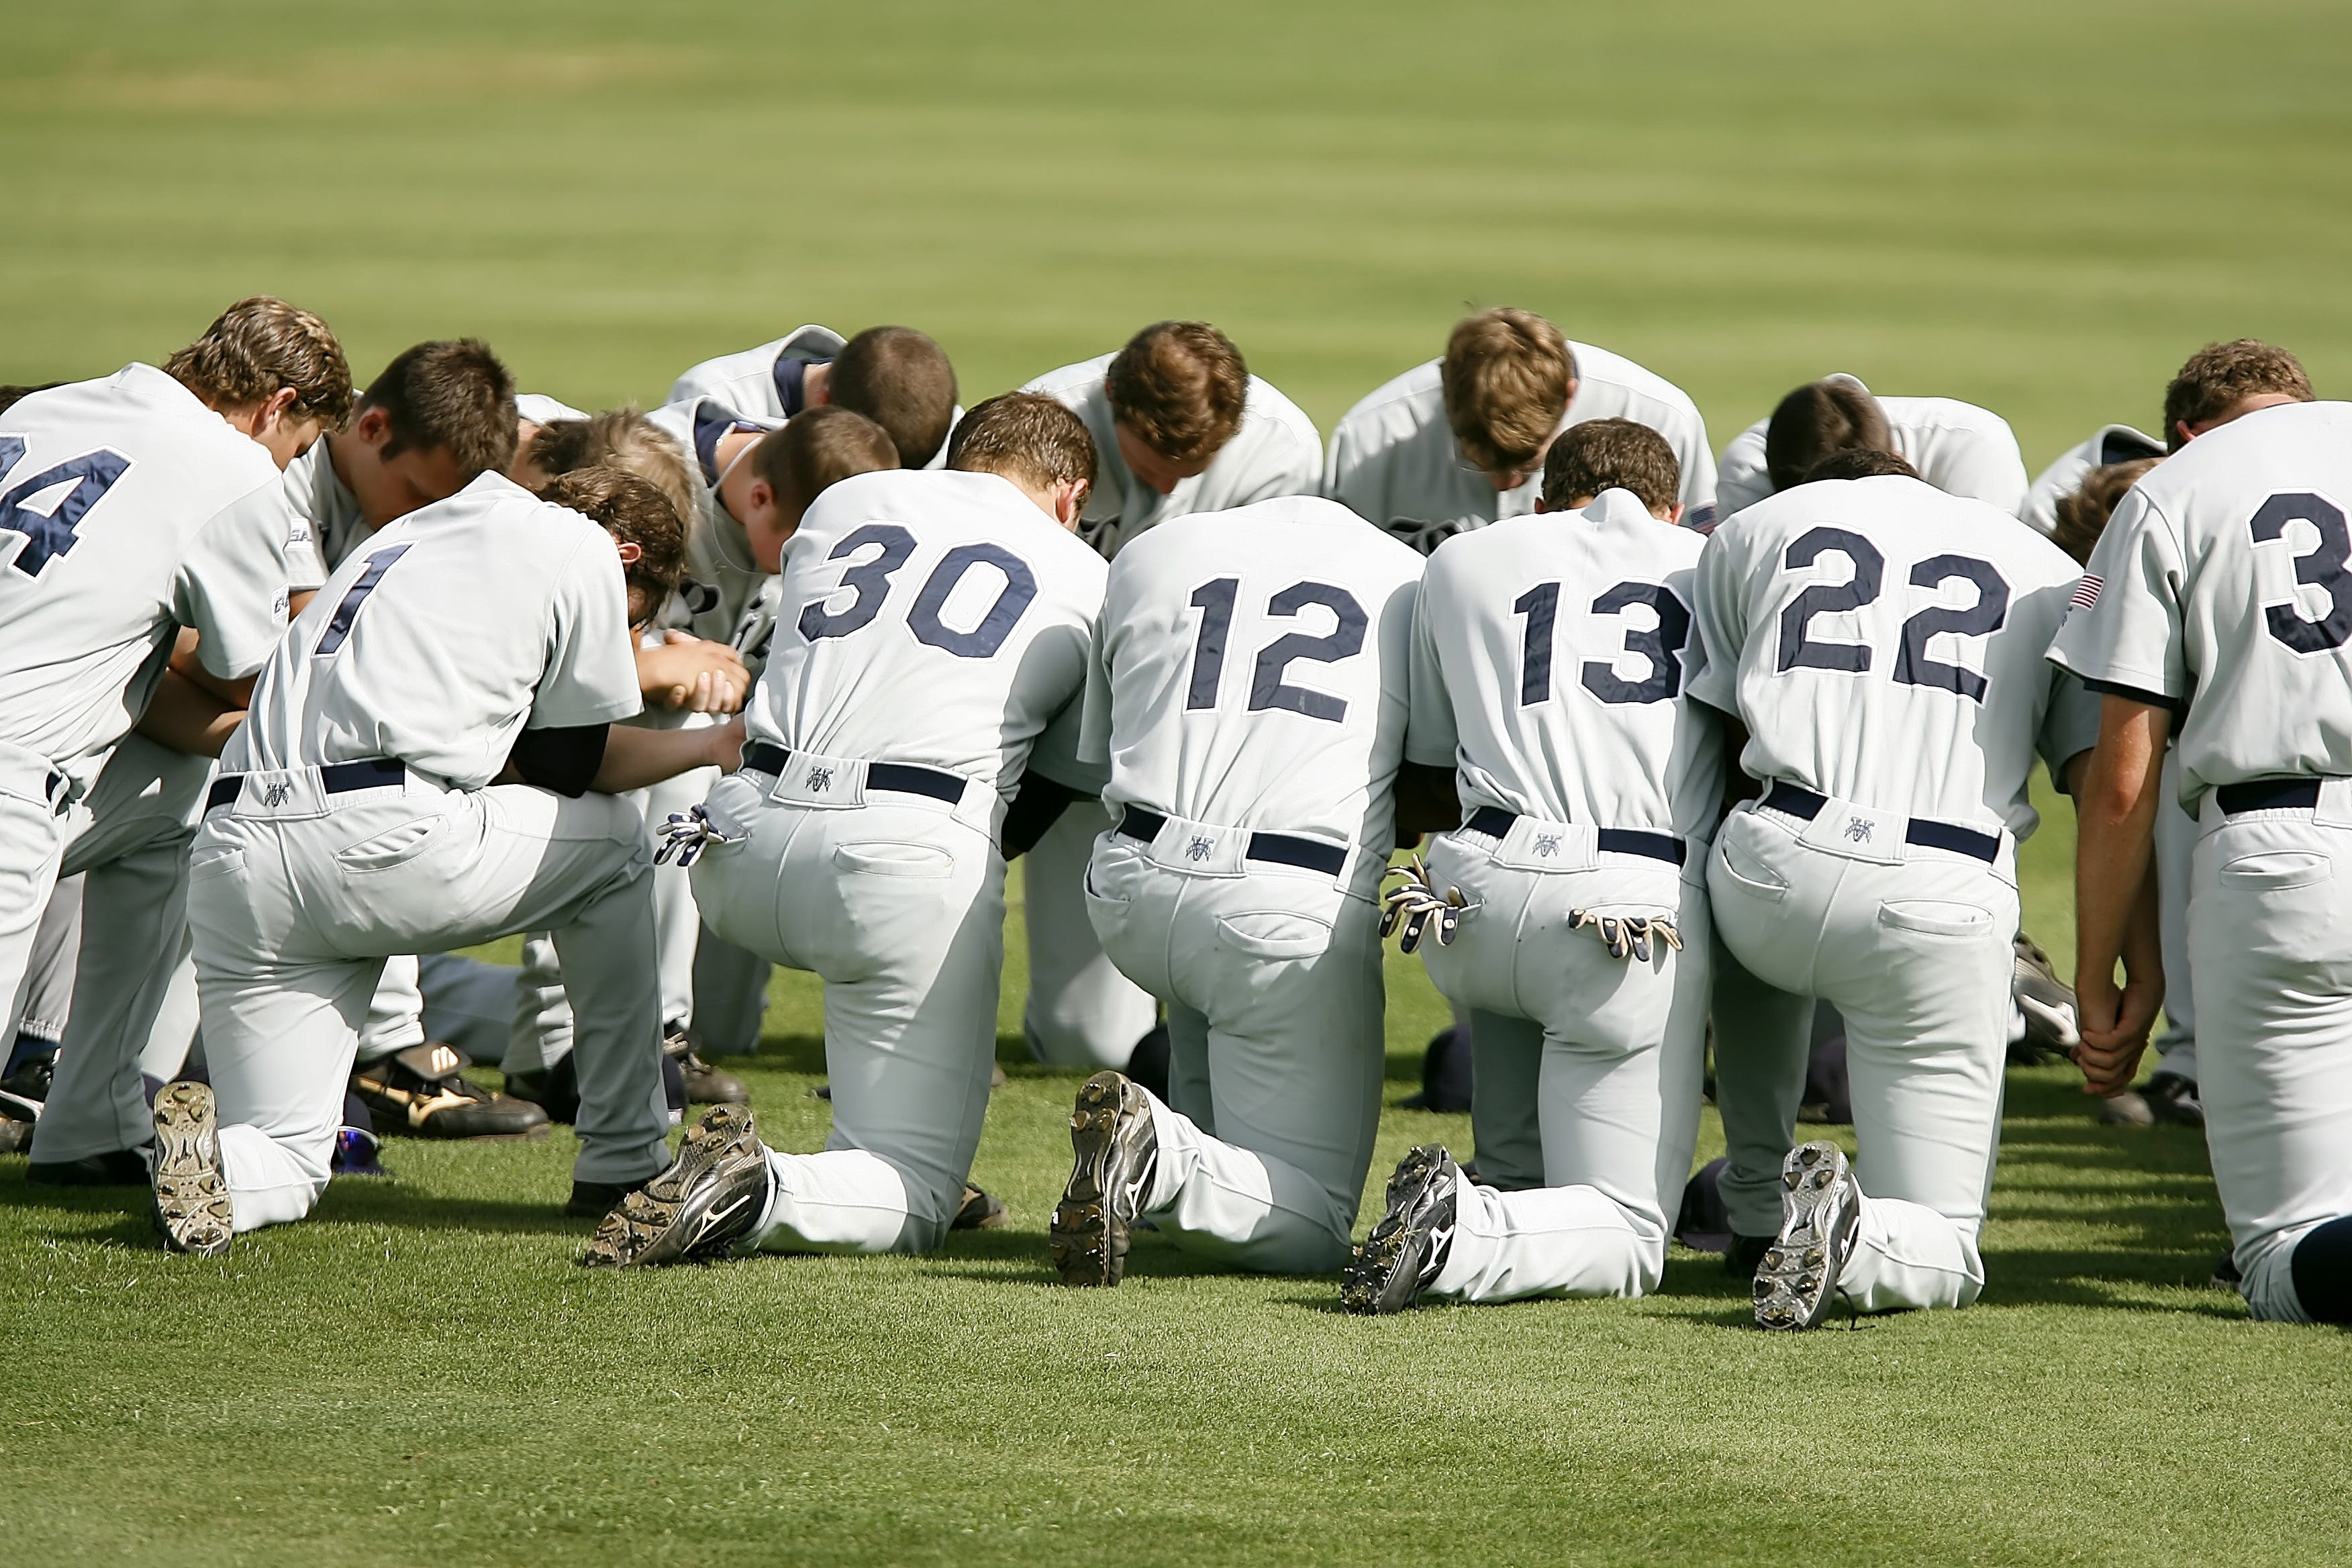 Baseball Player Kneeling on Grass Field during Daytime